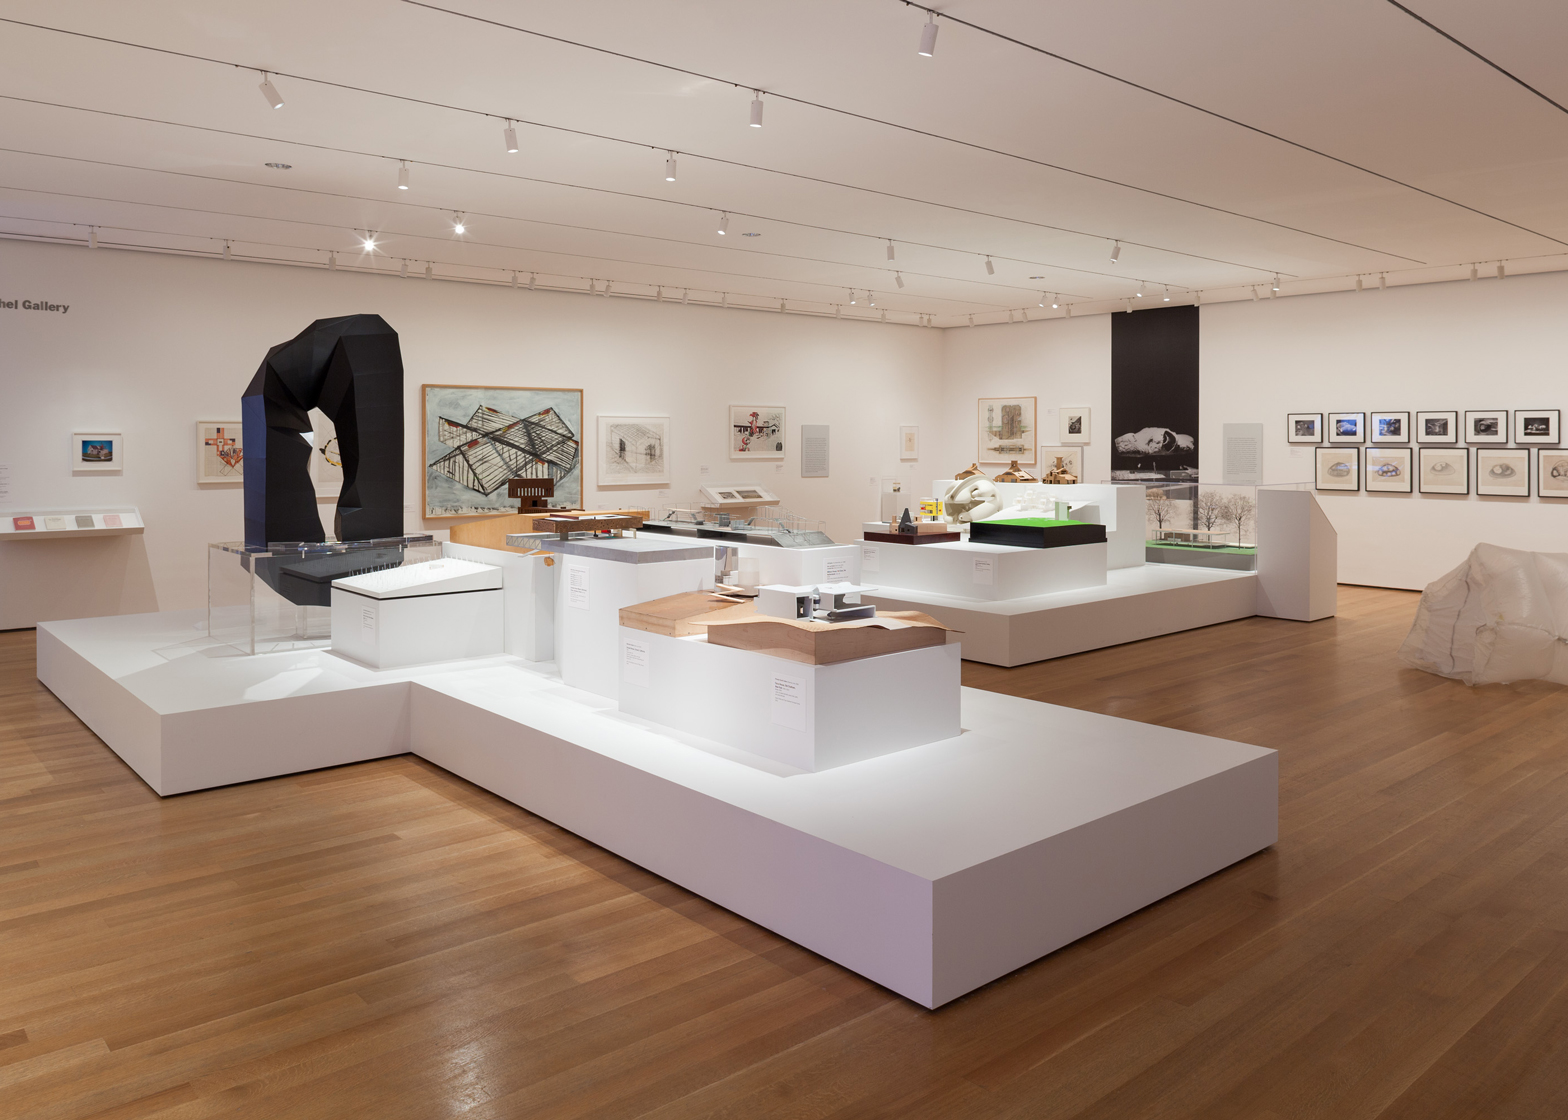 Installation view of Endless House: Intersections of Art and Architecture at The Museum of Modern Art, 2015